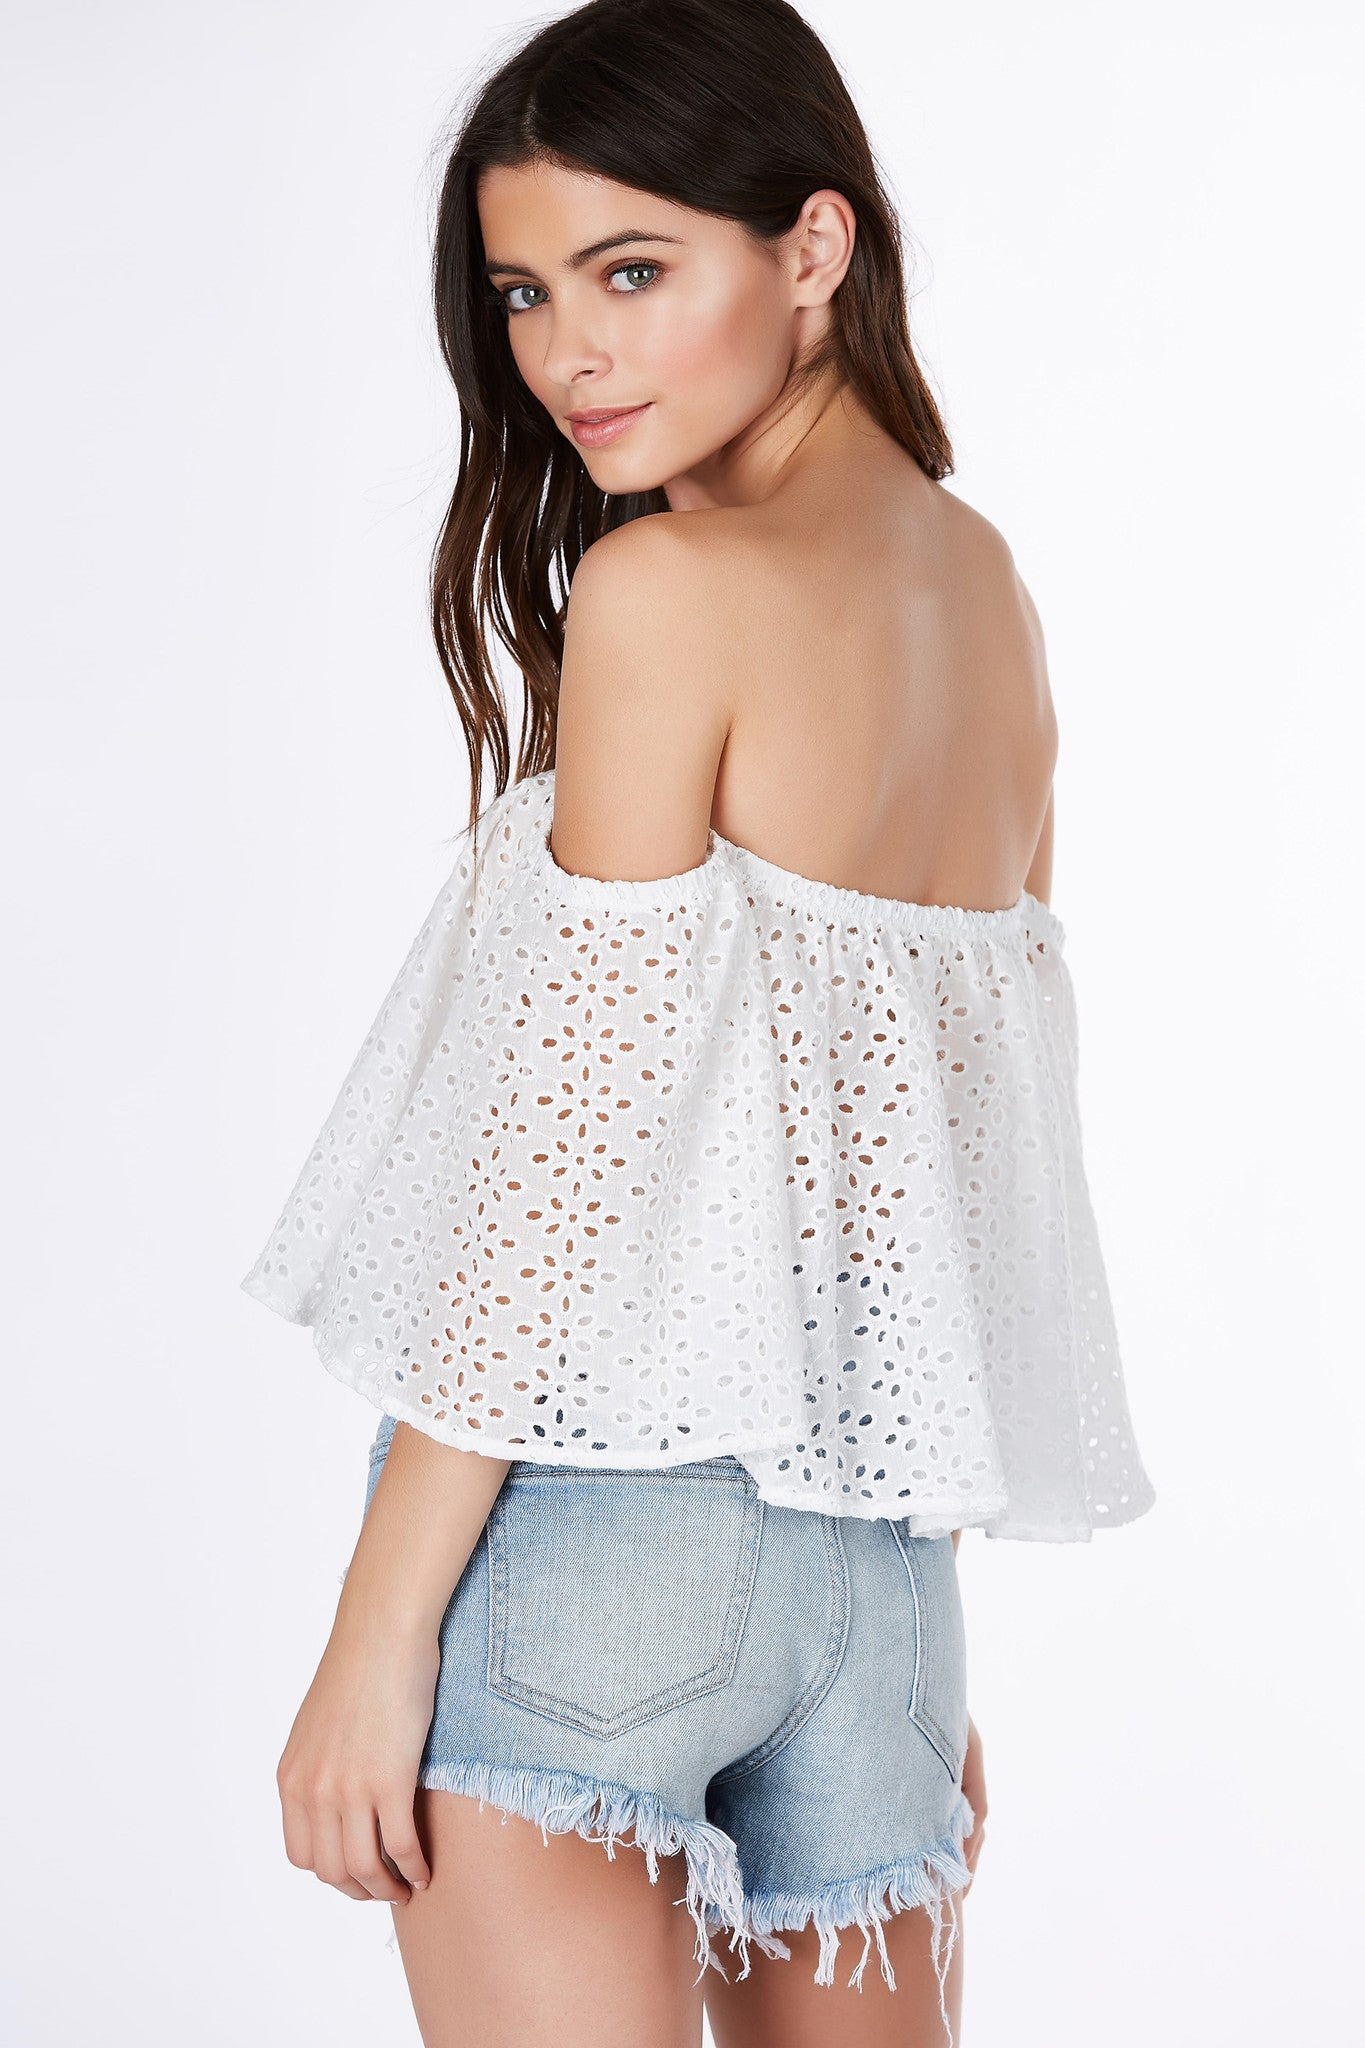 This off shoulder crop top is perfect for when you're feeling sweet and innocent. Adorable short sleeves with comfortable elasticized neckline. Dainty daisy patterns throughout with a chic peek-a-boo effect. Pair with mom jeans and sandals for a vintage-esque look.